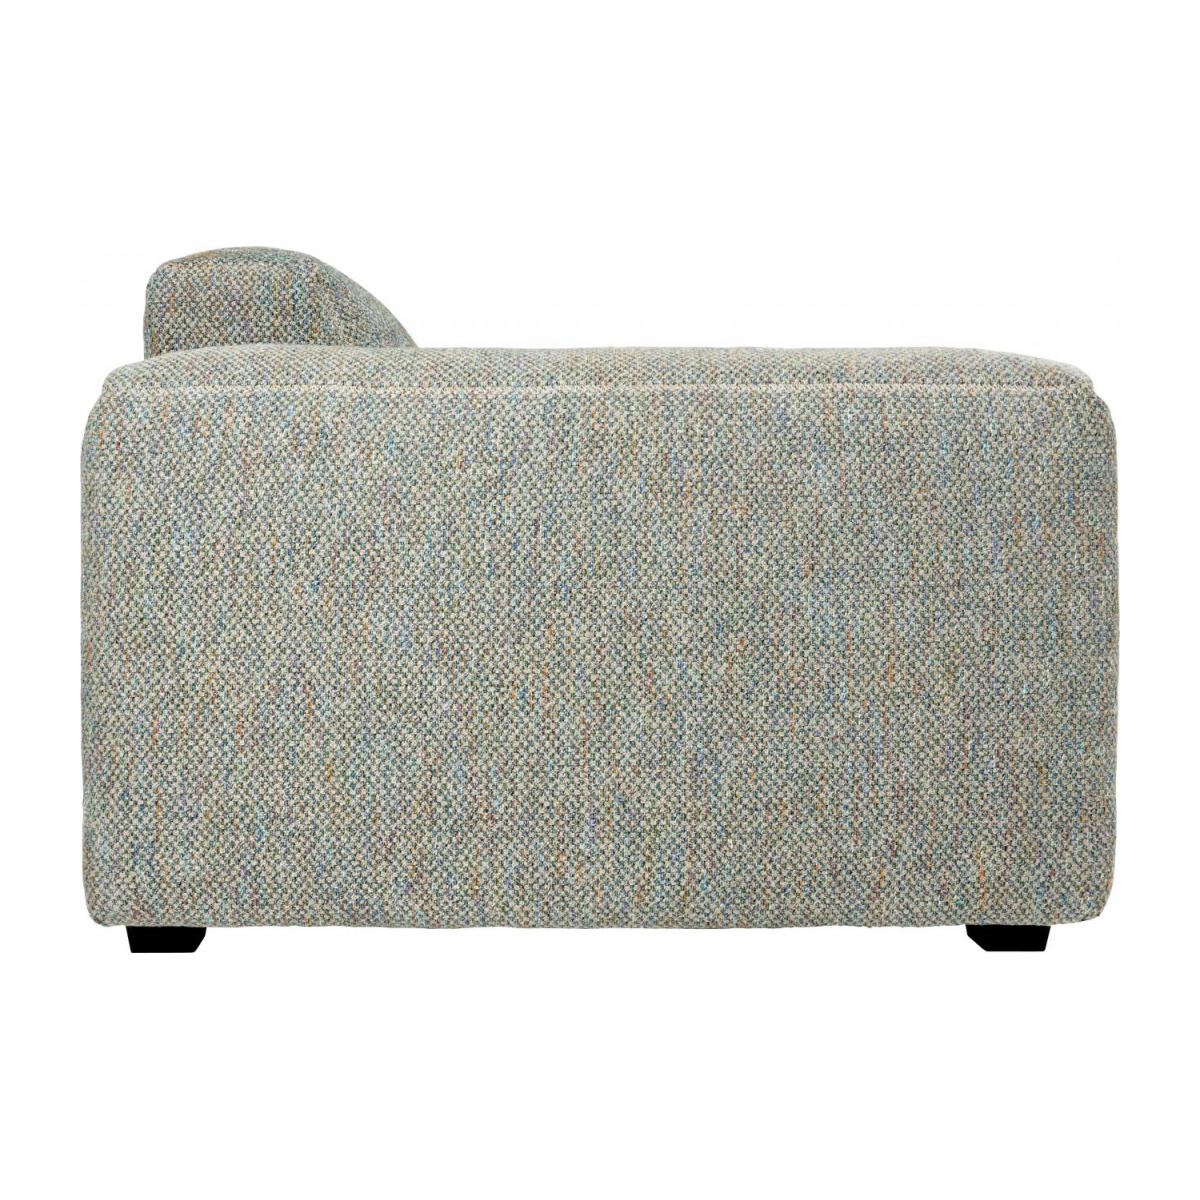 3 seater sofa in Bellagio fabric, organic green n°5